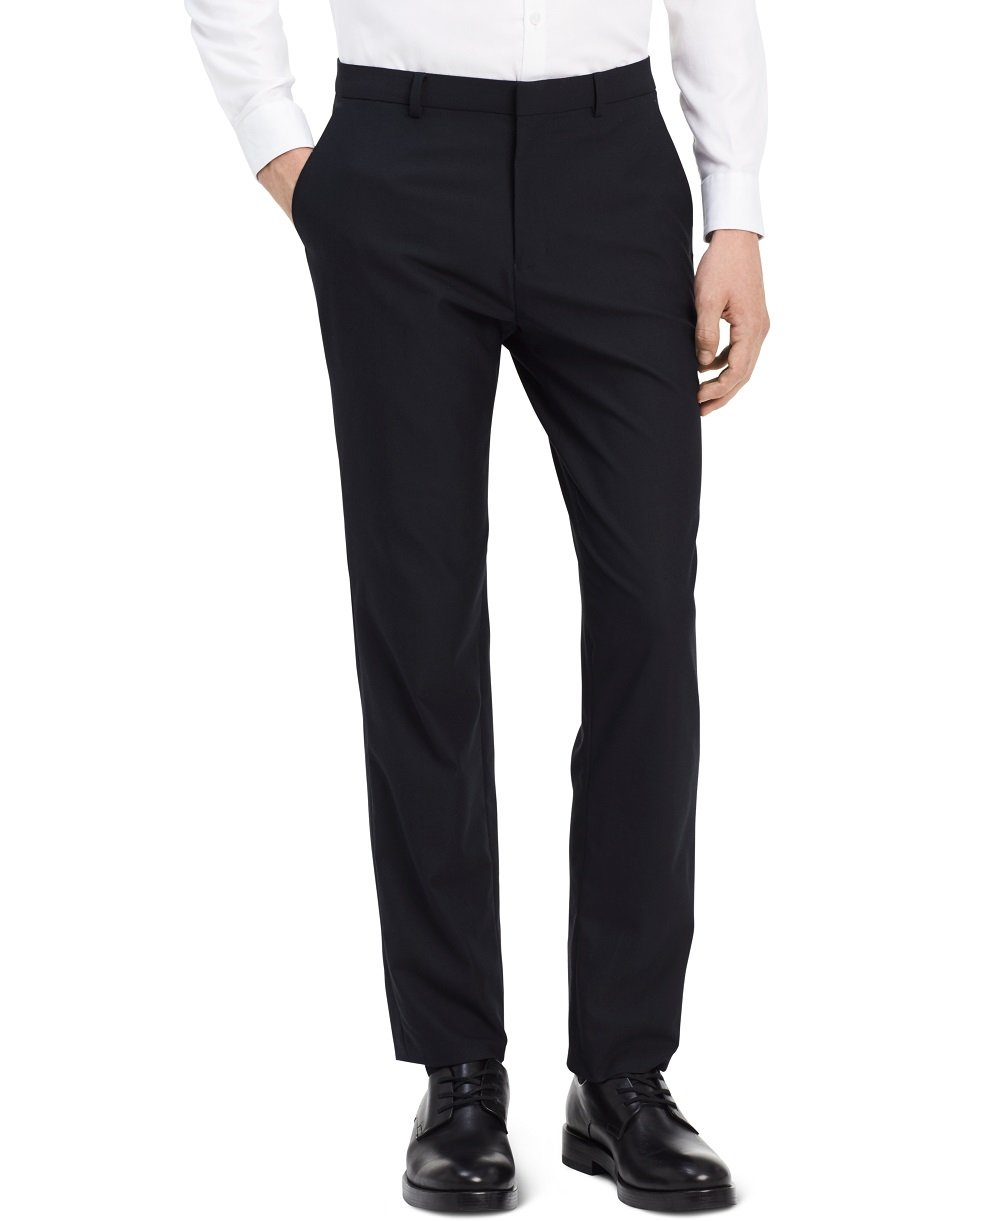 Calvin Klein Men's Infinite Slim Fit Trouser Suit Pant 4-Way Stretch, Sky Captain, 31W 30L